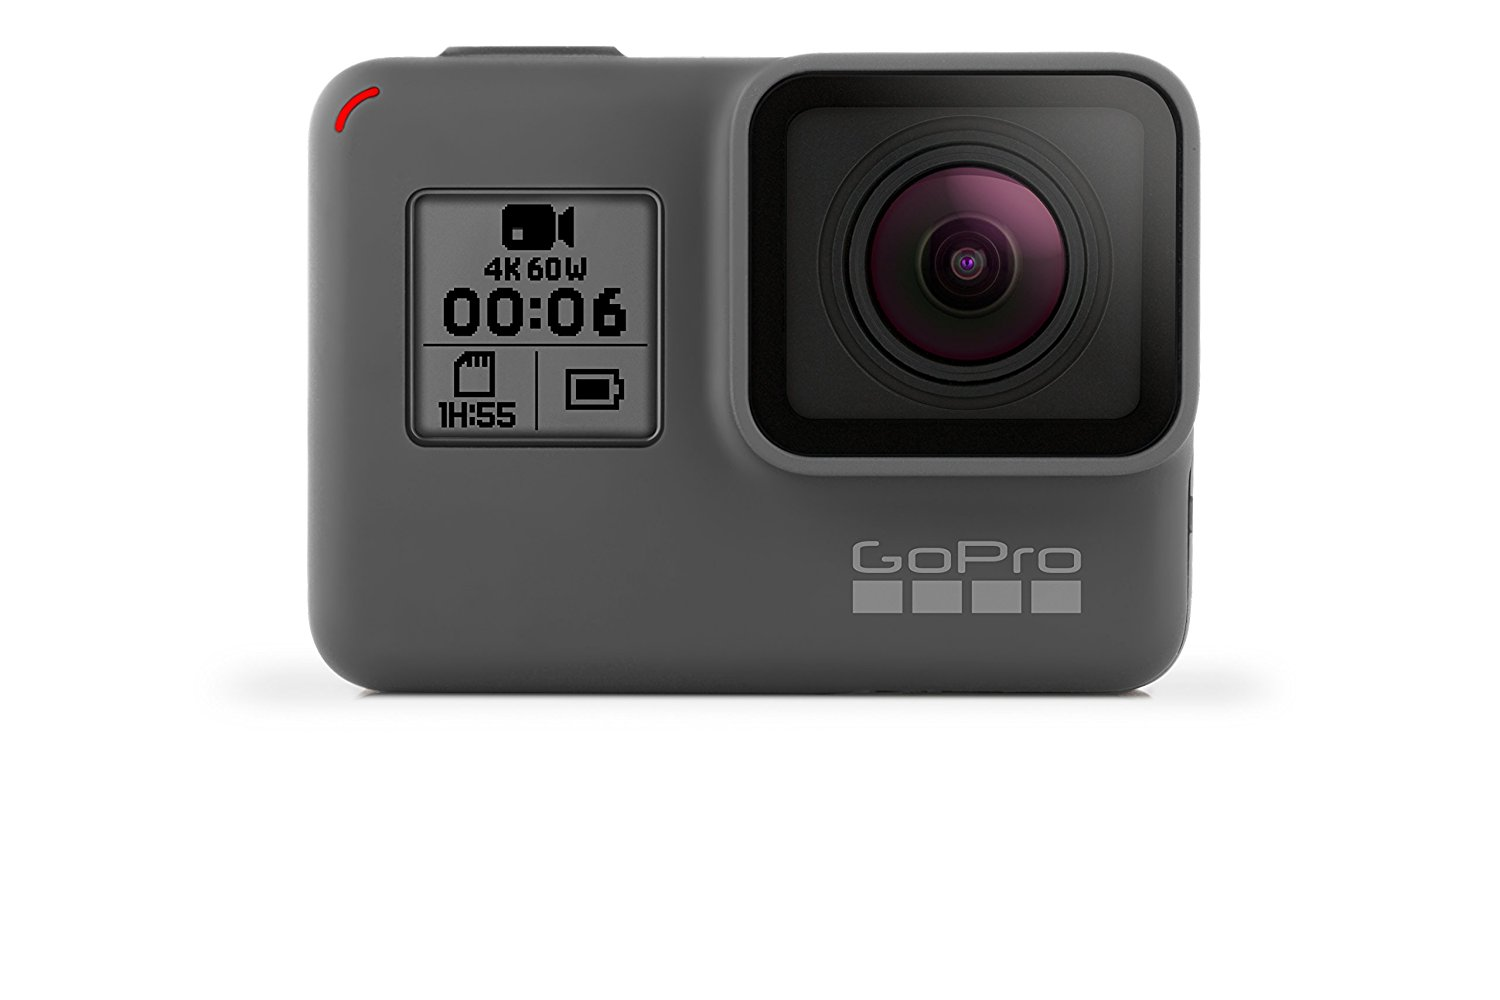 GoPro Hero 6 - I love my GoPro, it's a fantastic accessory camera for travel